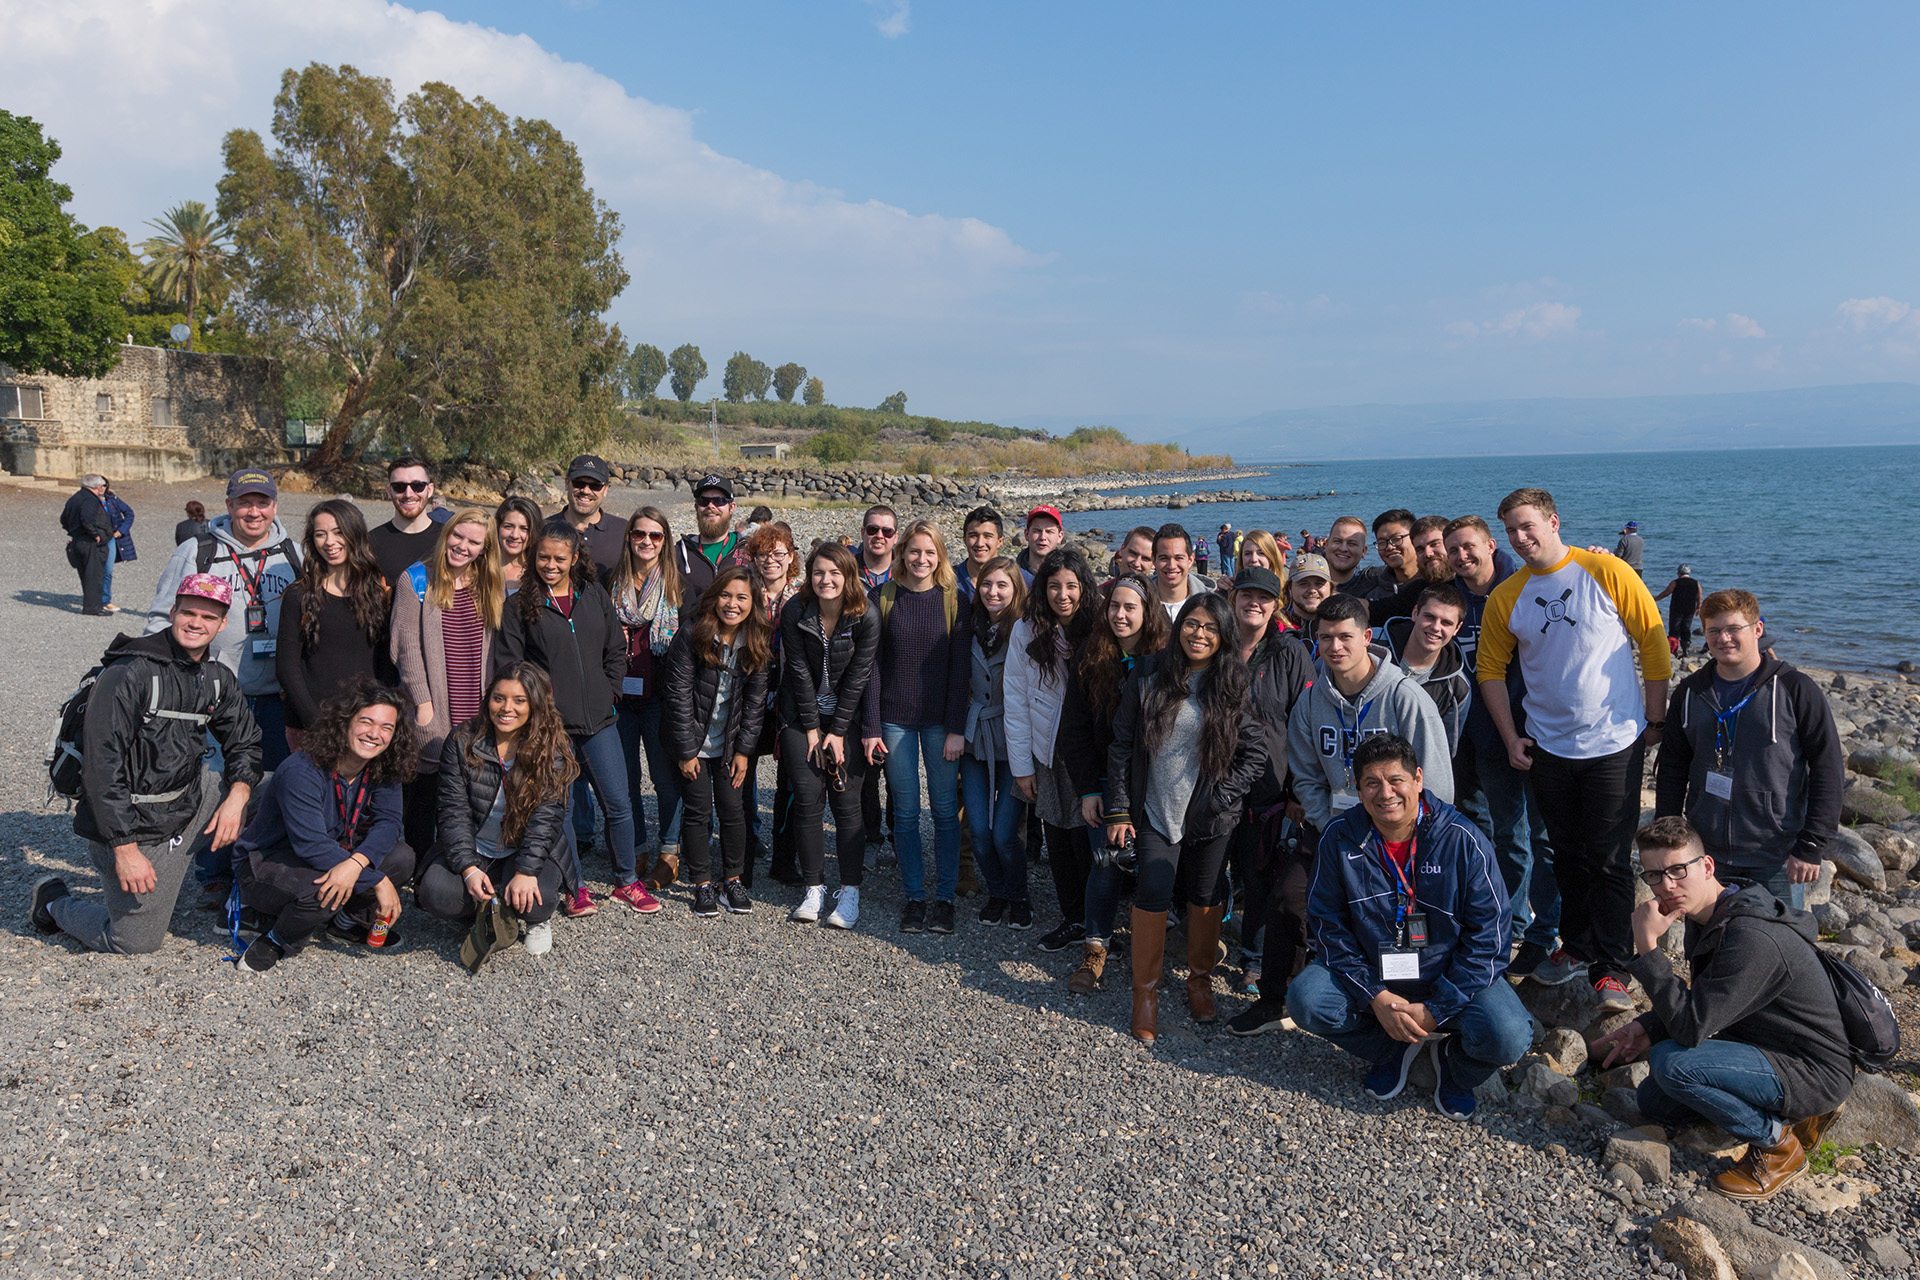 Journey to Israel inspiring, eduaitonal for CBU group